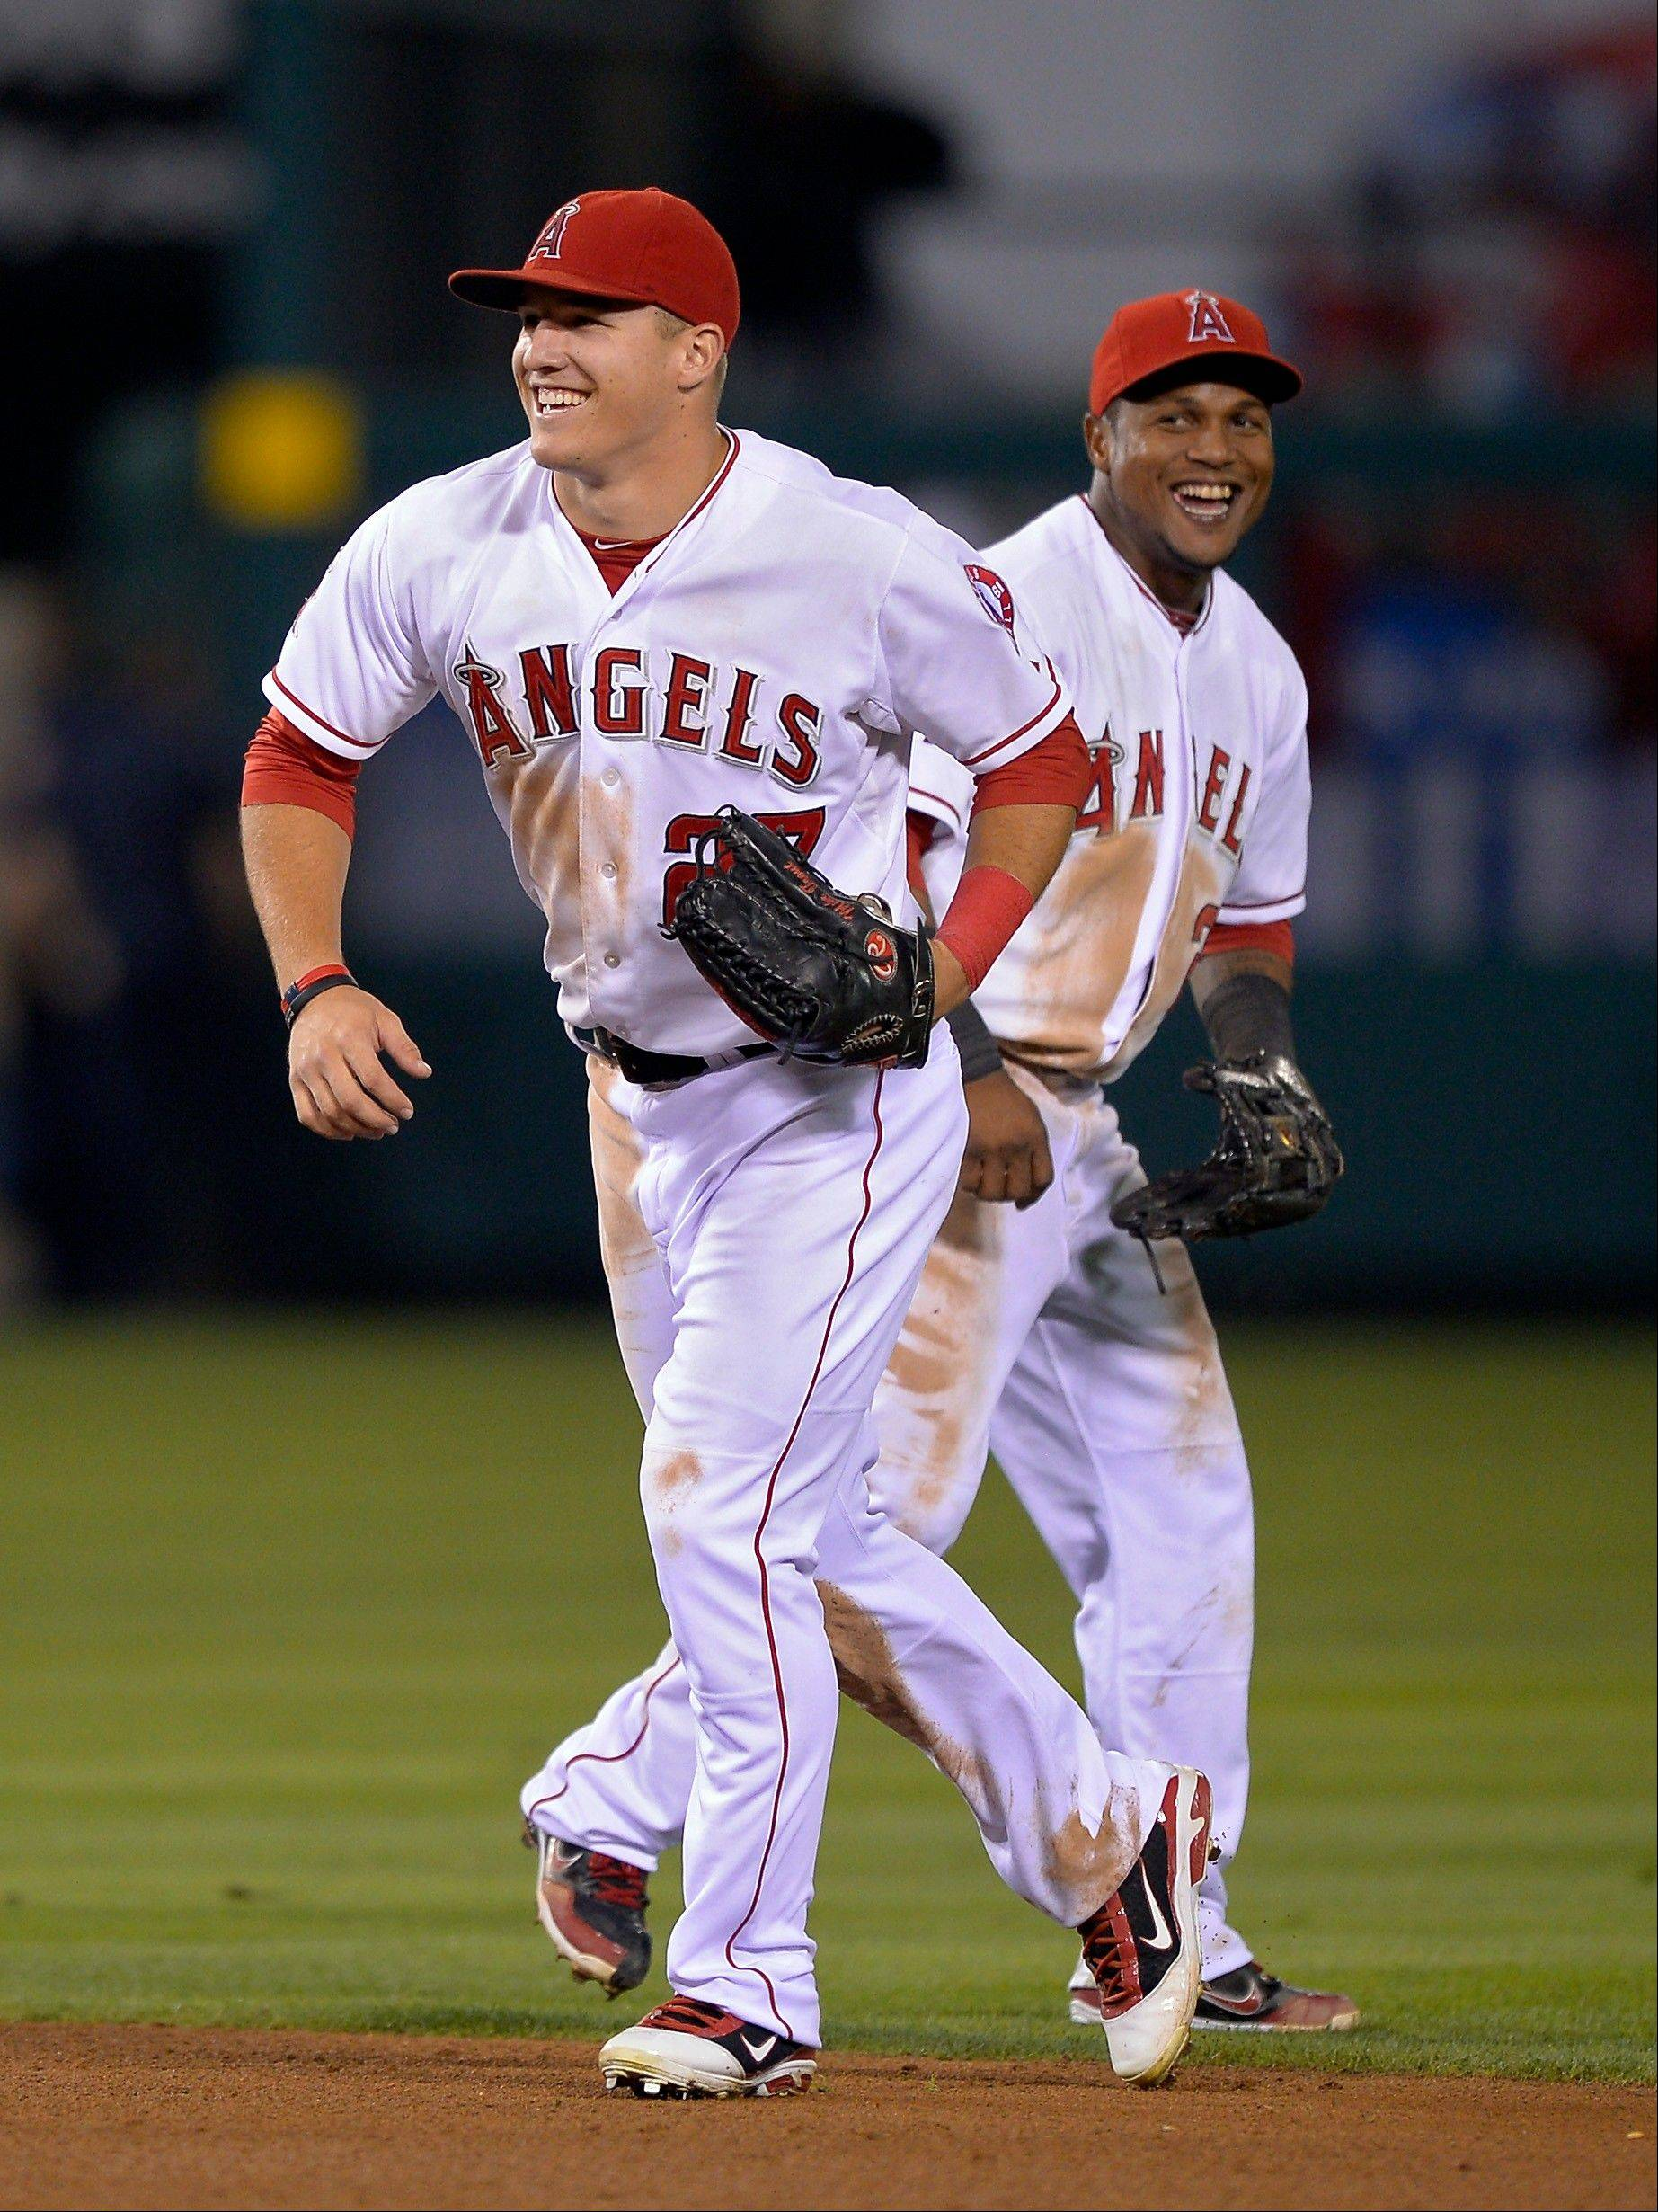 Los Angeles Angels center fielder Mike Trout, left, celebrates with shortstop Erick Aybar after they defeated the Chicago White Sox in their baseball game, Friday, Sept. 21, 2012, in Anaheim, Calif. AP Photo/Mark J. Terrill)